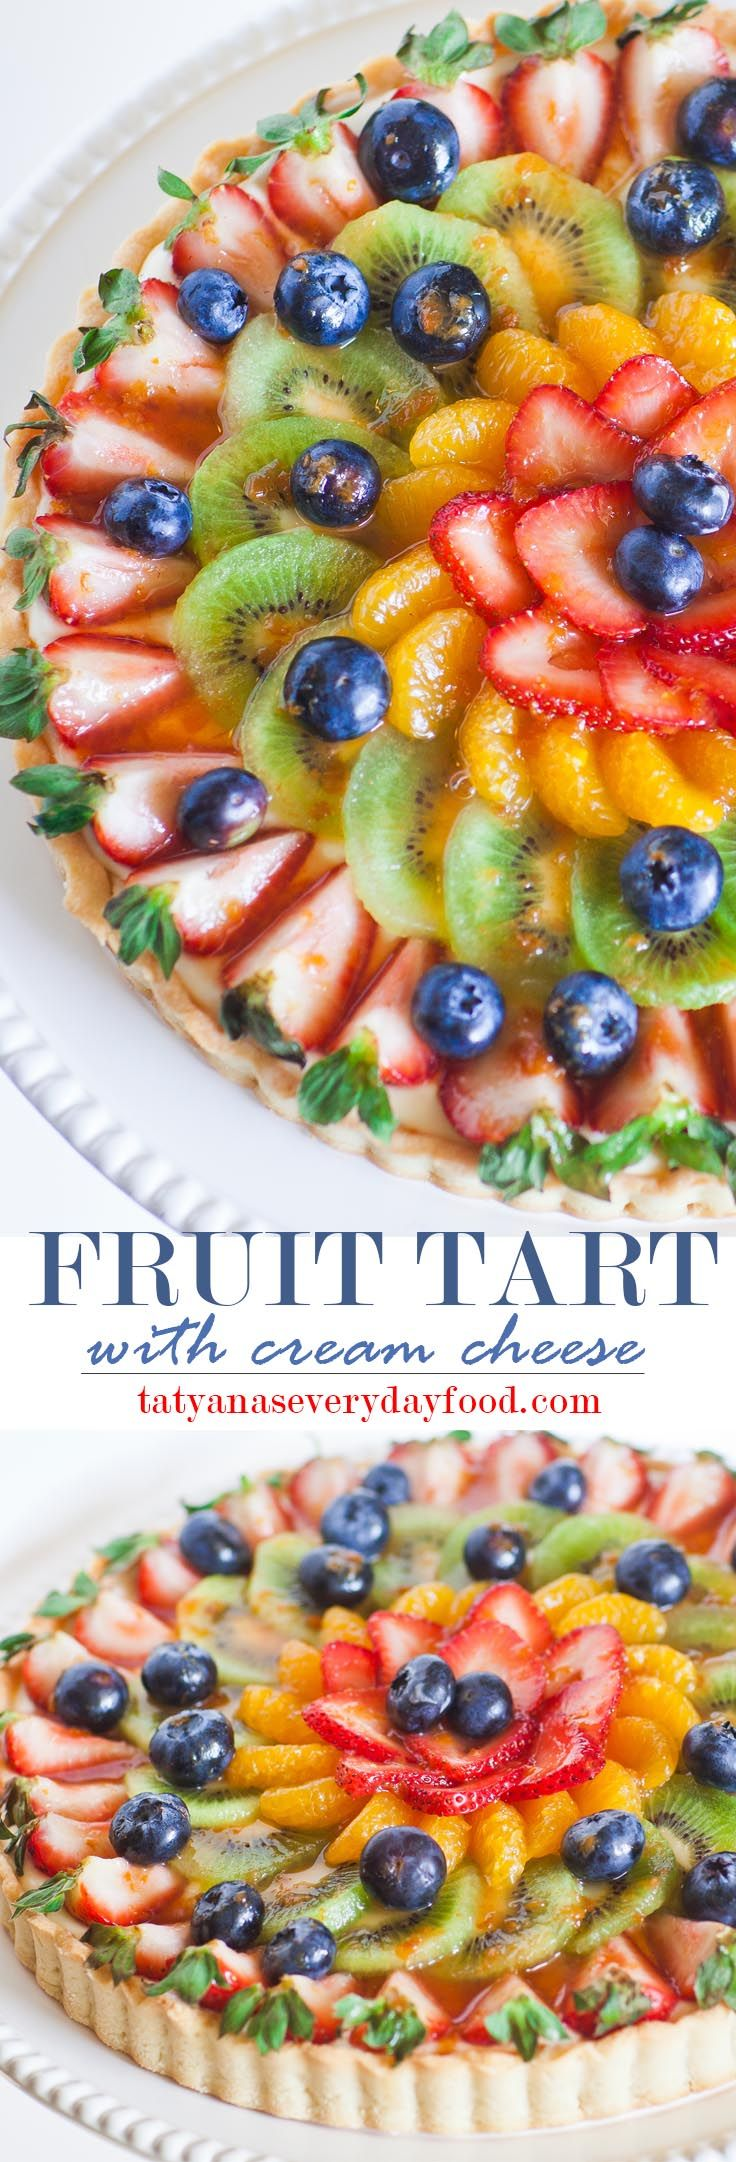 Fruit Tart with a lemon and cream cheese filling. With video recipe by Tatyana's Everyday Food